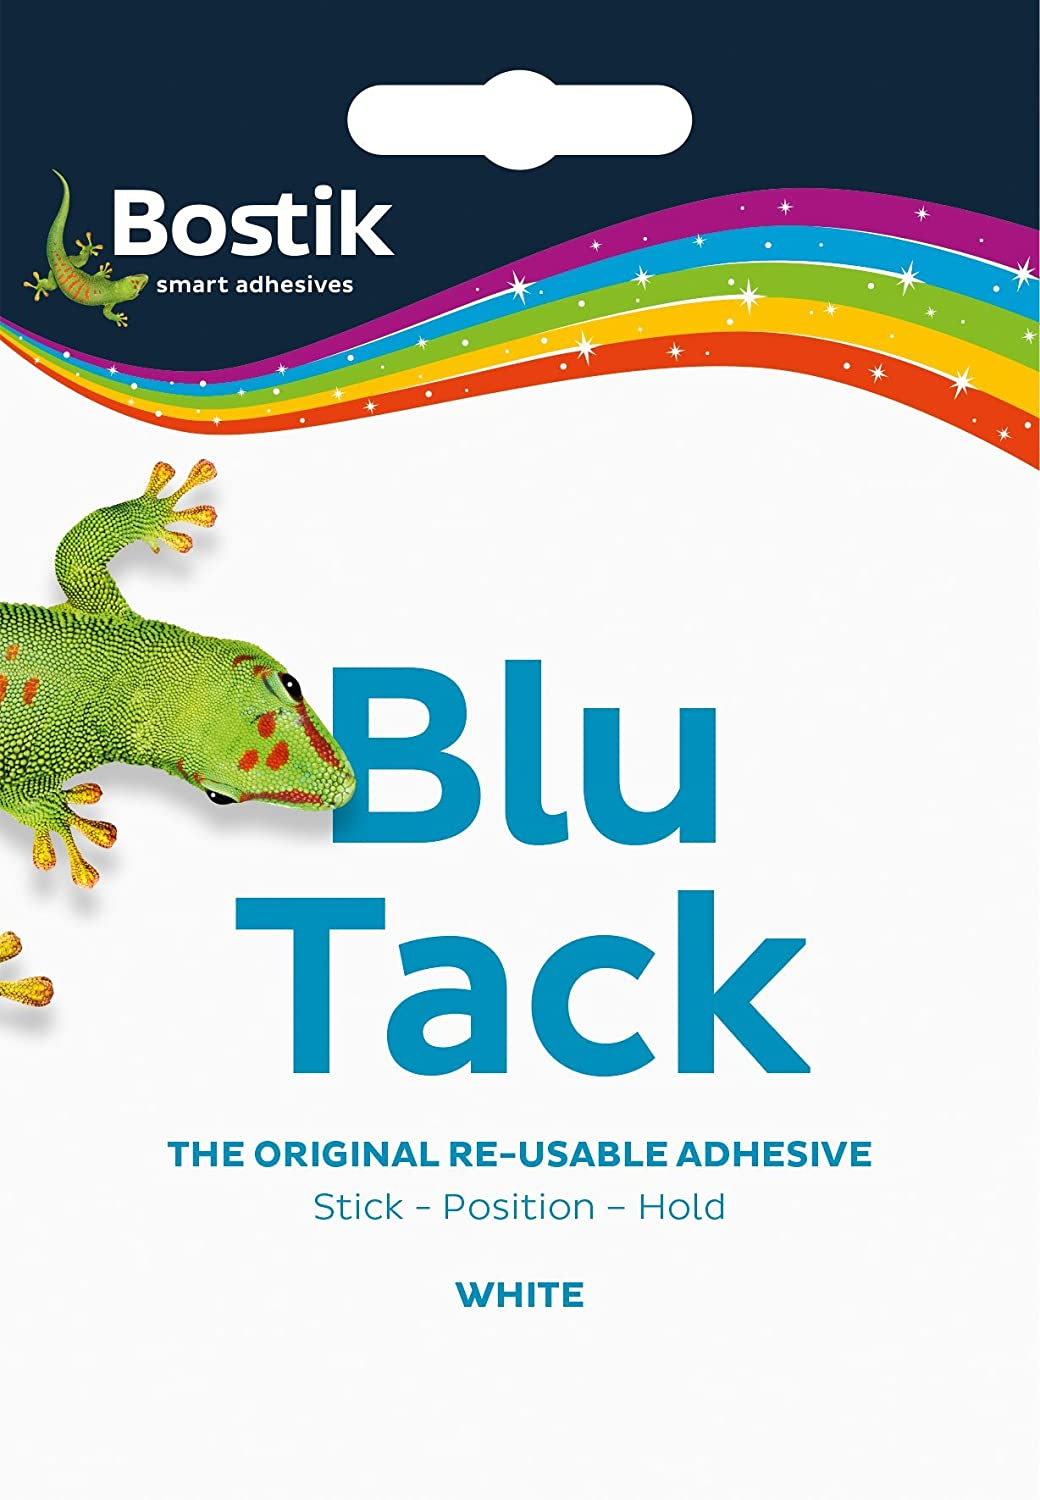 Bostik Original Blu Tack White - Re-usable Adhesive - 65g Pack 801127